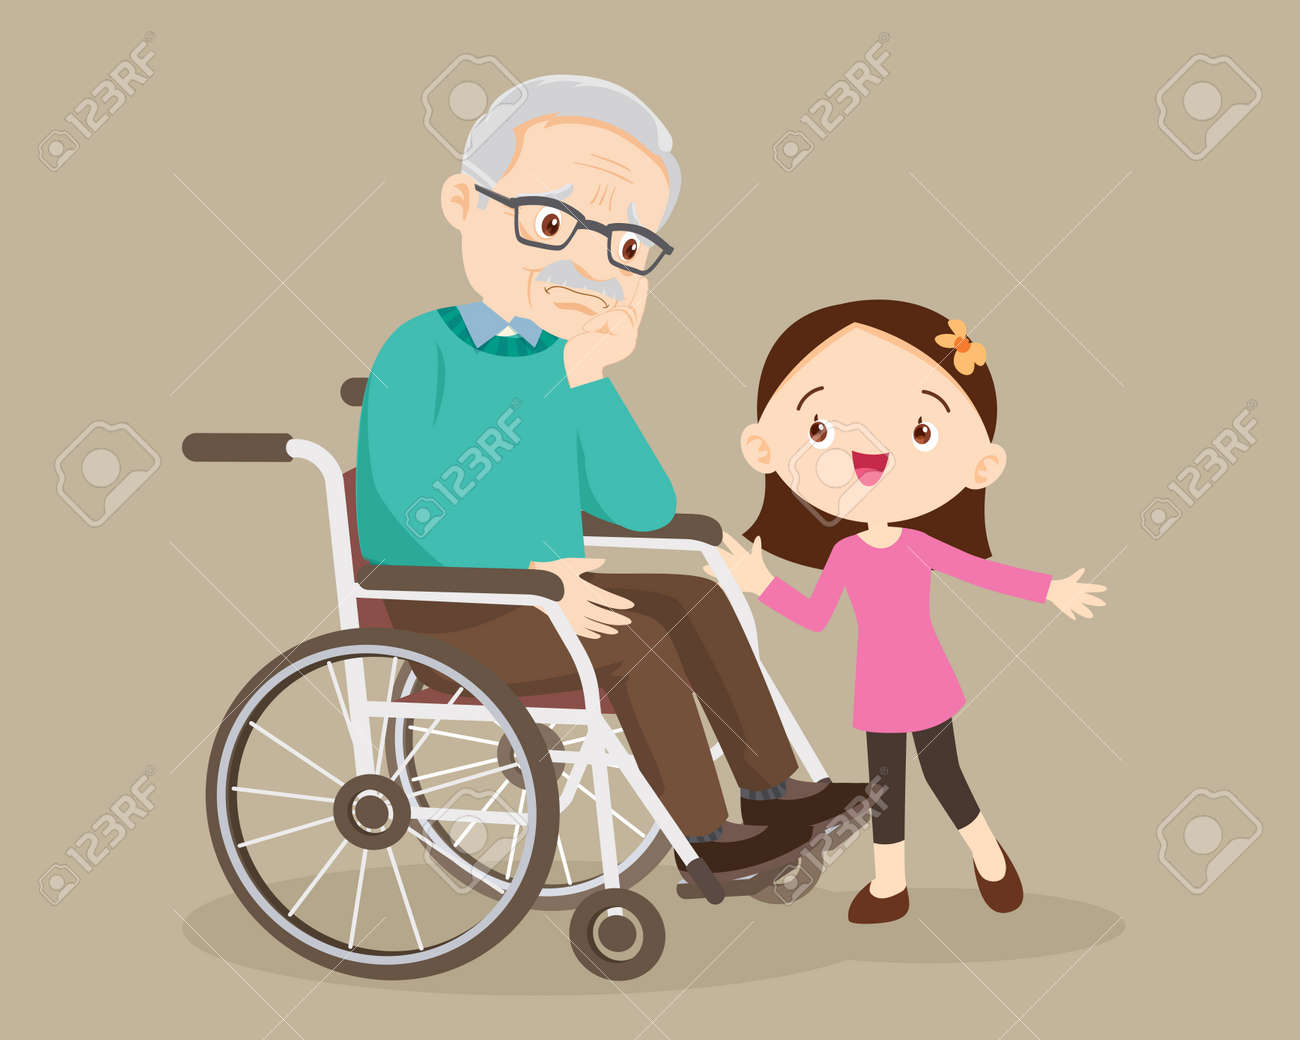 elderly are sad, the child consoling, sad elderly man Bored, Girl consoling Senior man sitting alone on wheelchair. Careful caregiver taking care of the patient. Child Girl and grandfather - 165794379